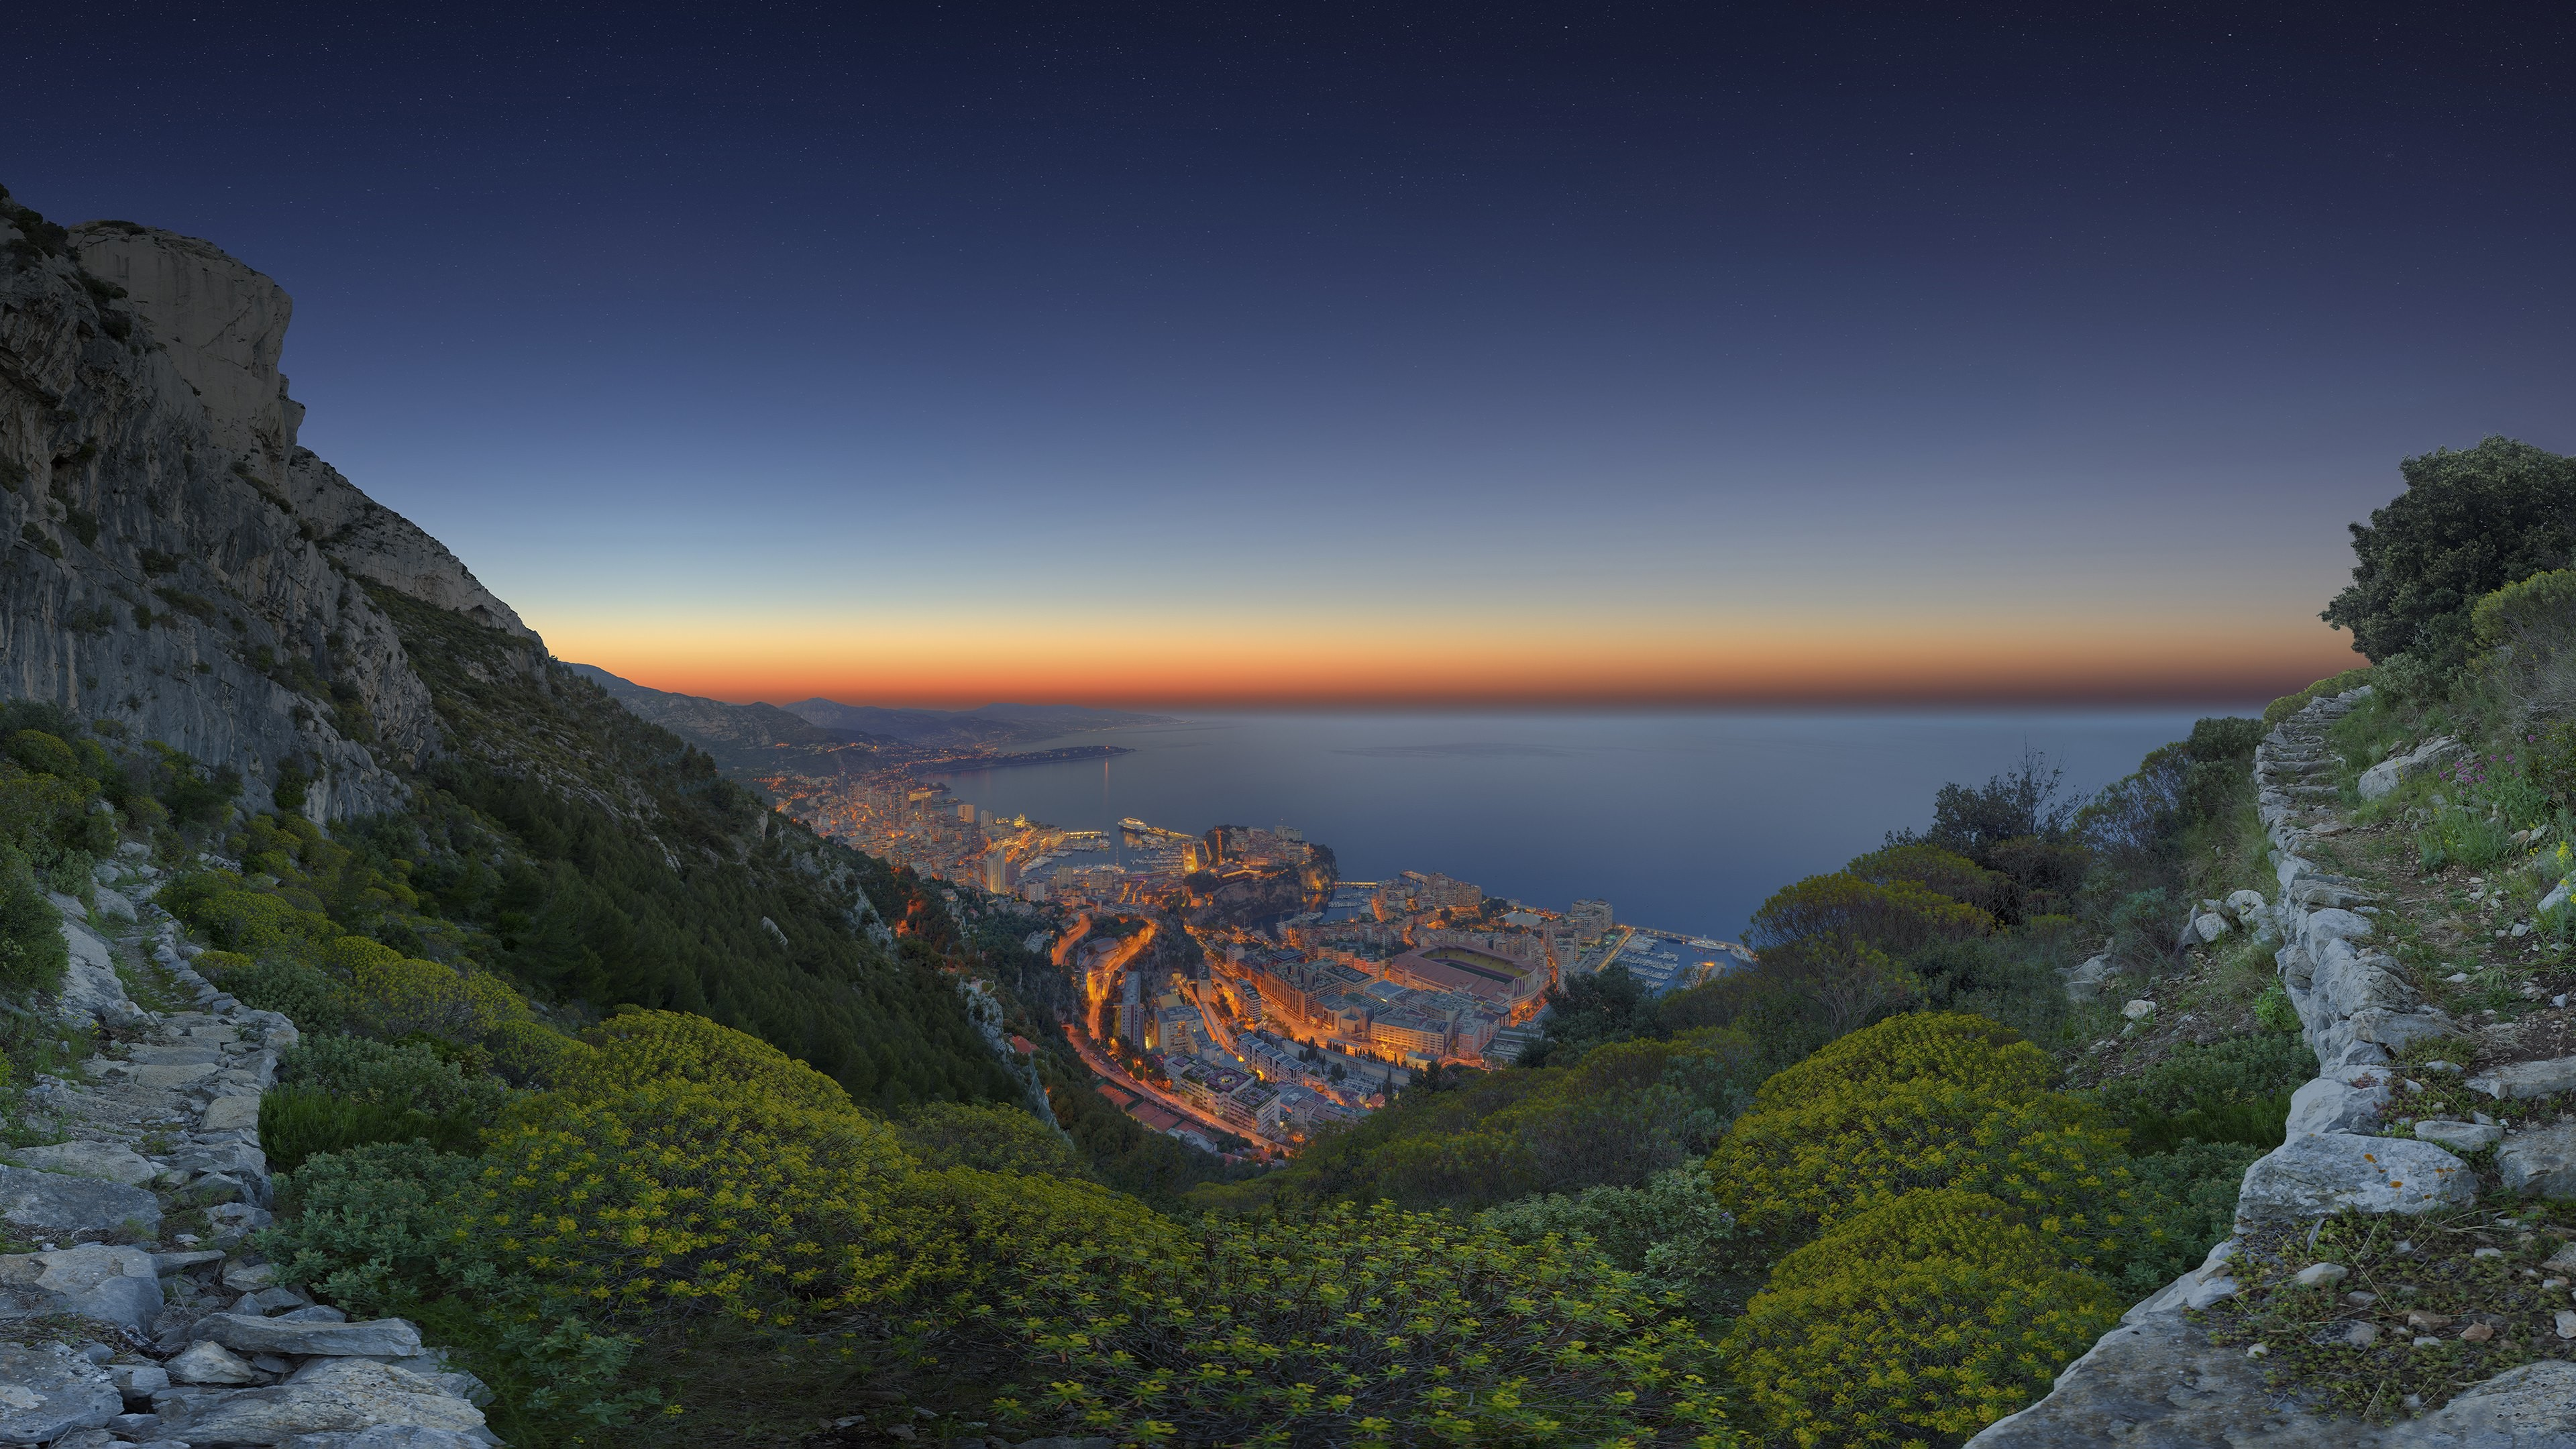 3840x2160 Hot sunrise in this panoramic picture from Monaco featured below in 4k, HD  and wide sizes with the permission of talented photographer - Rainer · Save  the ...